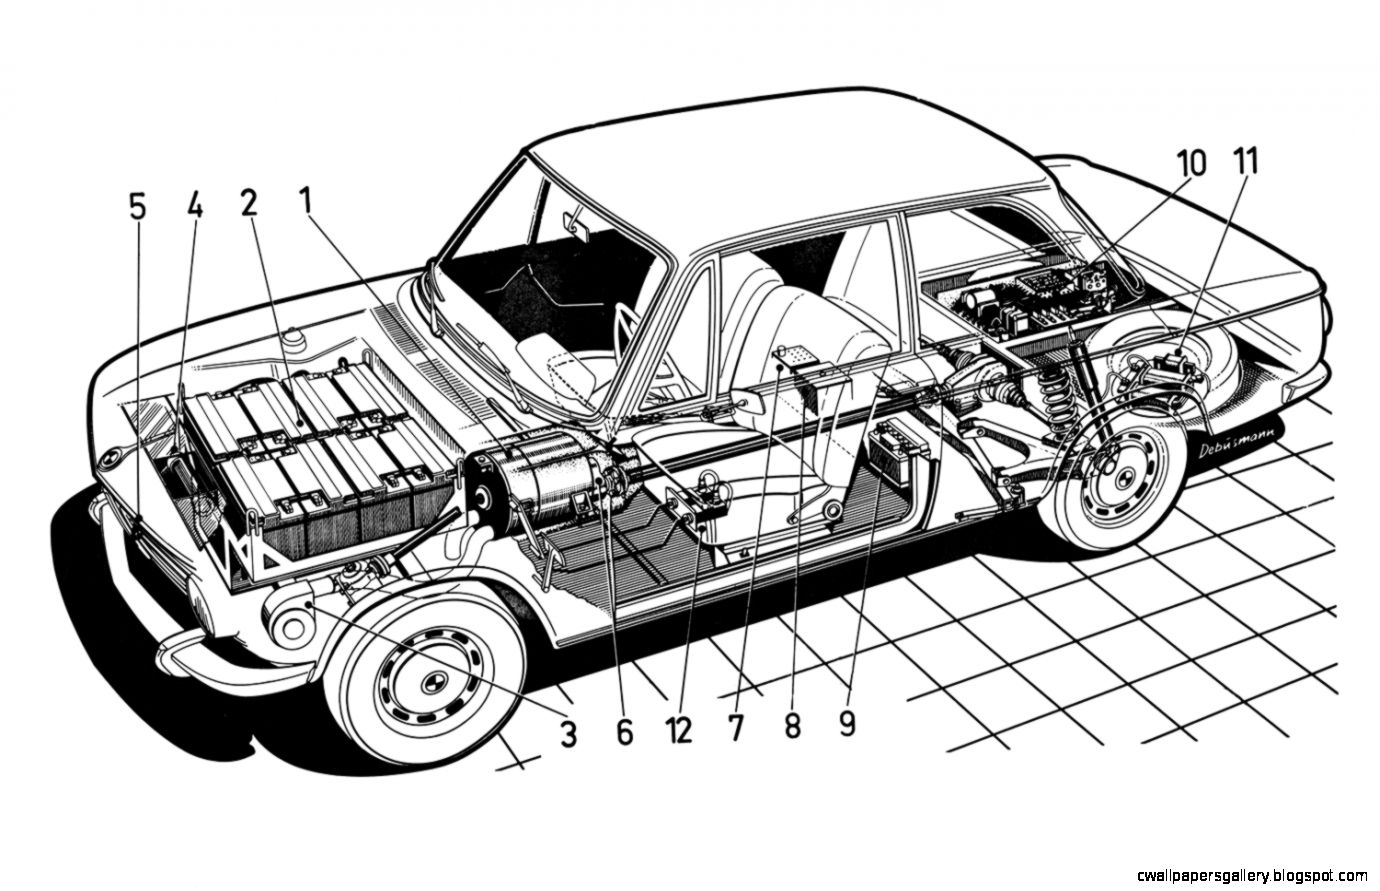 Diagram Of Electric Car